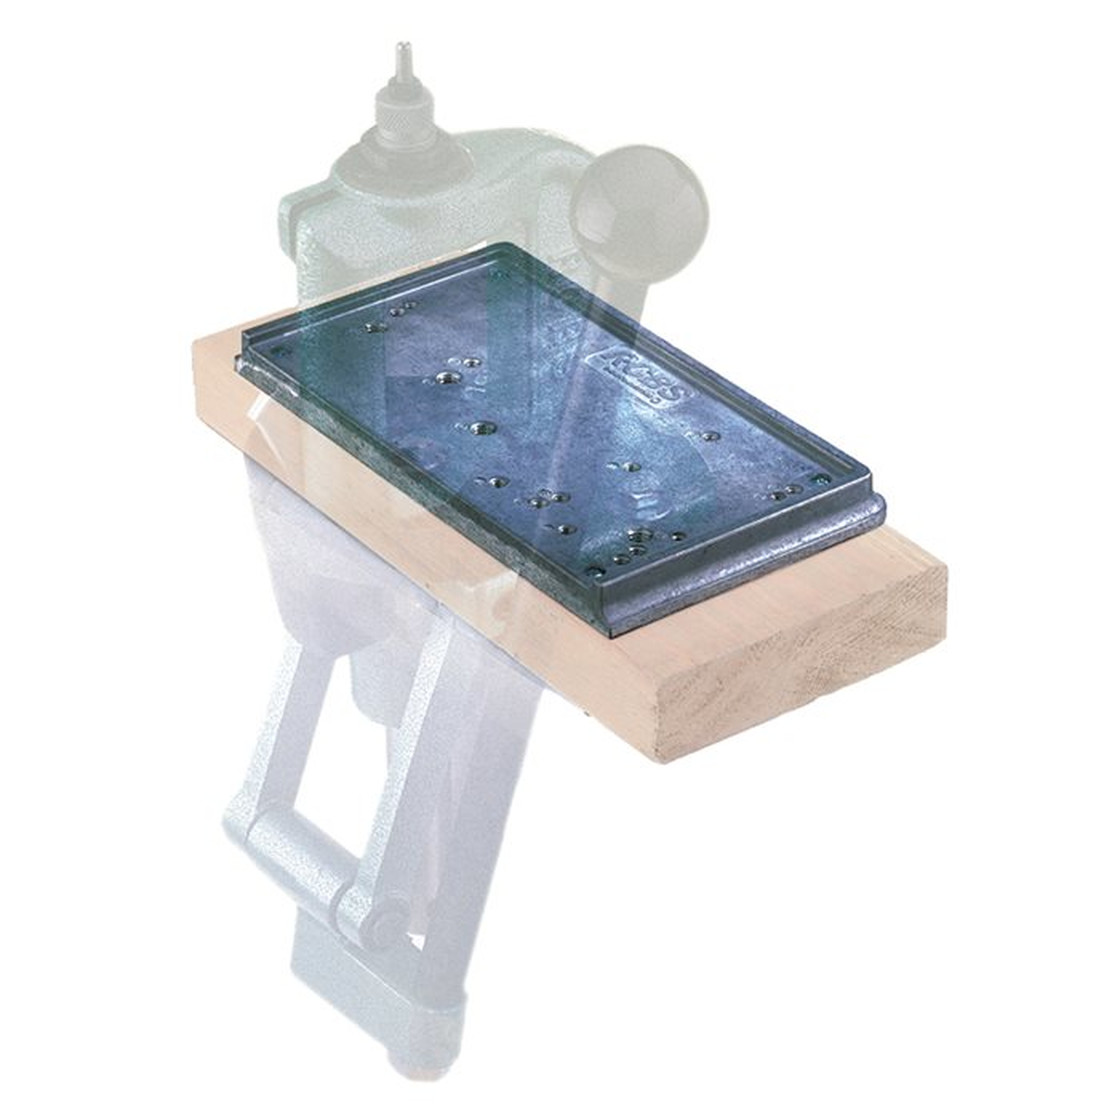 RCBS Accessory Base Plate-3 Grey